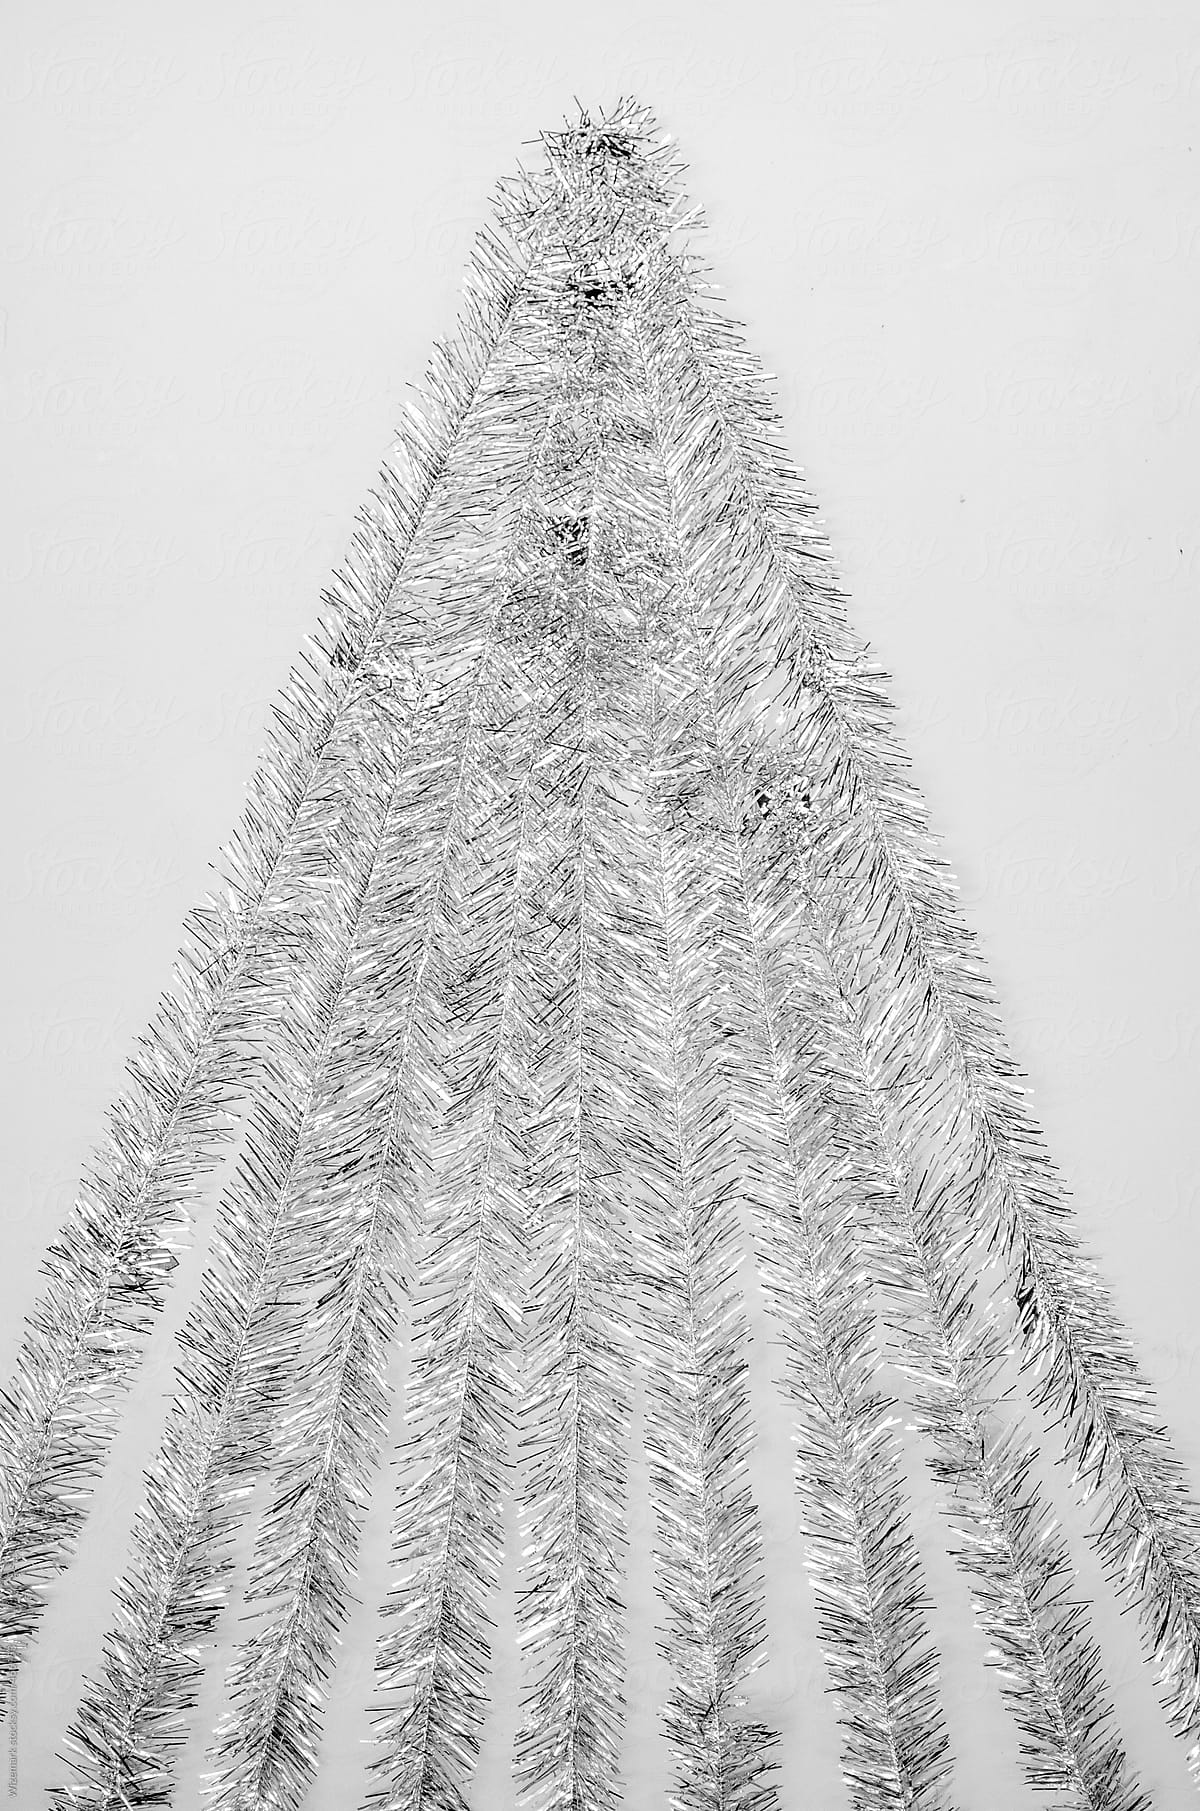 Christmas Tree Made Of Curly Silver Garland/Tinsel On A White ...